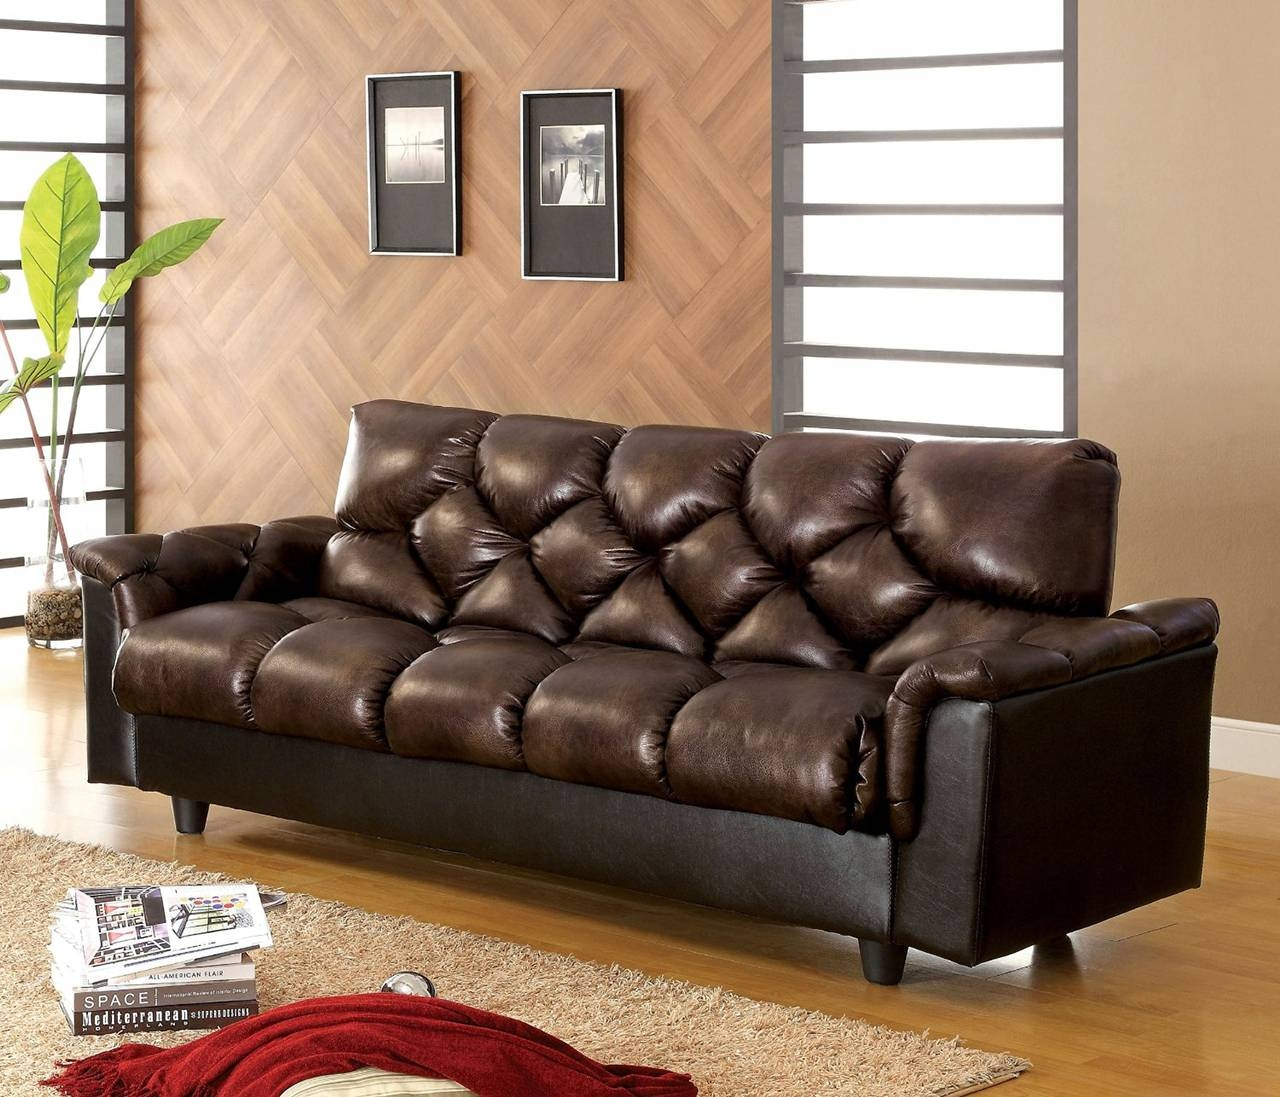 25 Best Sleeper Sofa Beds To Buy In 2017 with regard to Faux Leather Sleeper Sofas (Image 1 of 15)